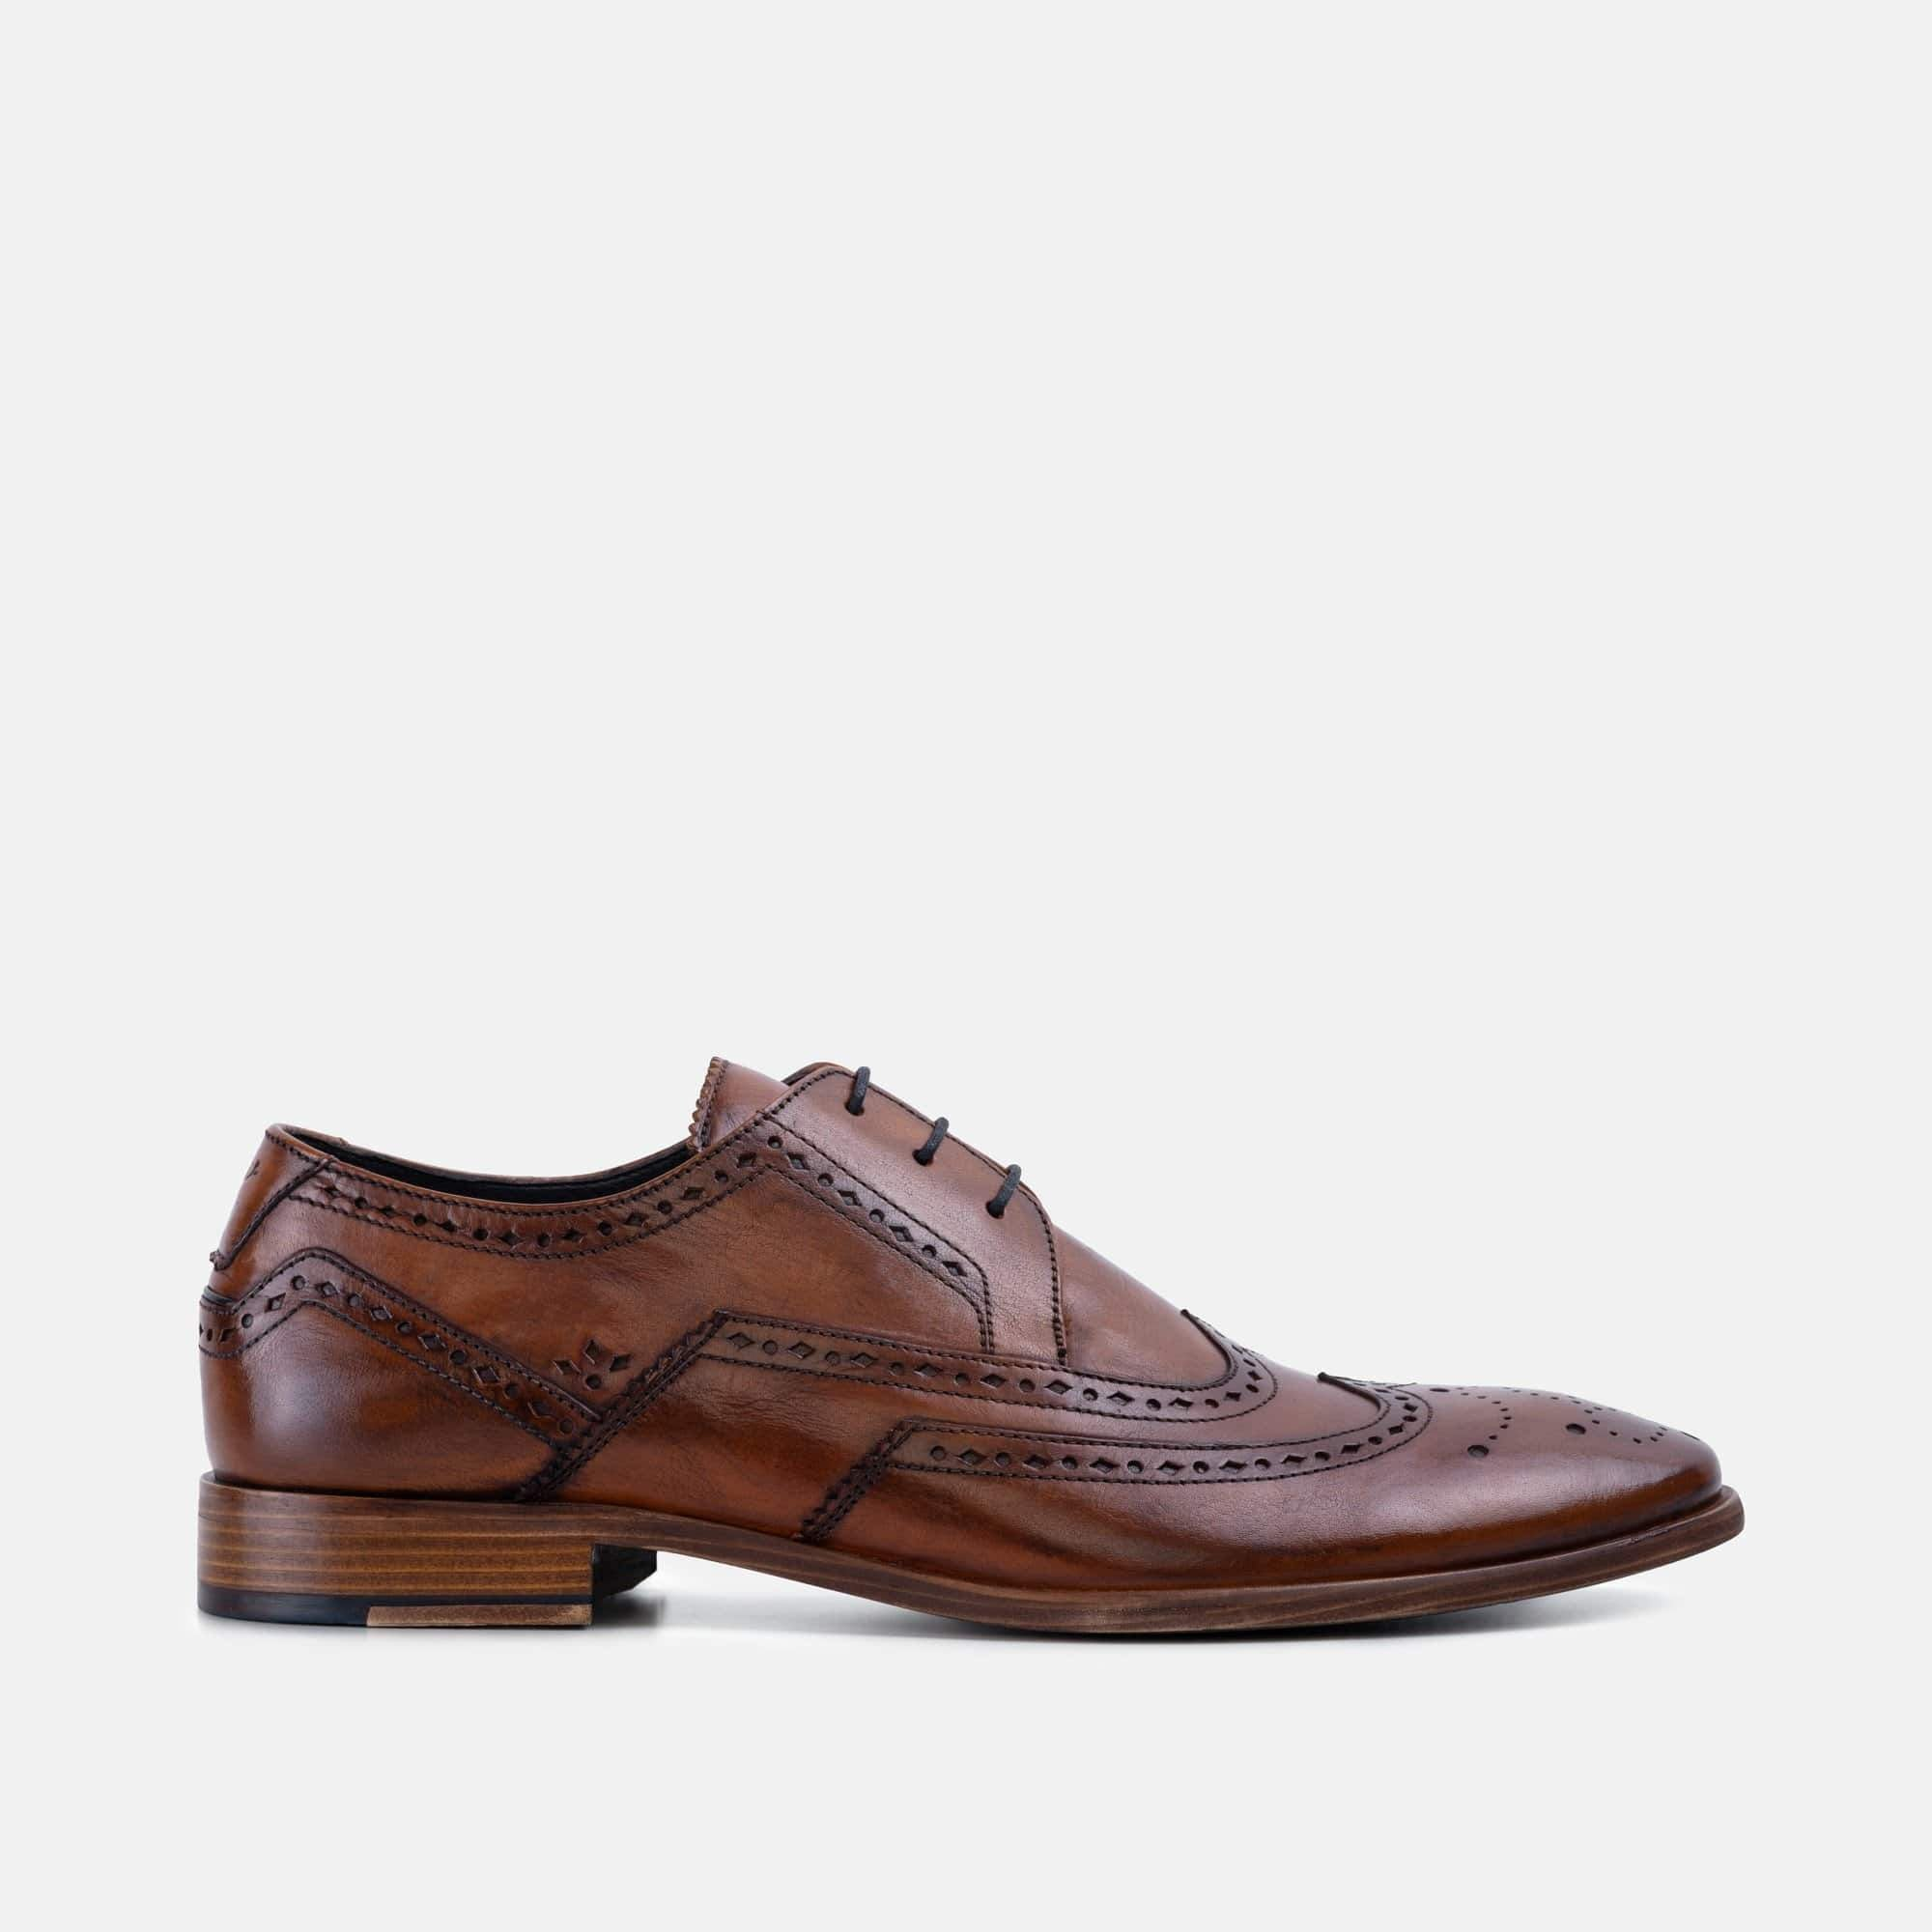 Mens daniel tan summer derby brogue shoe